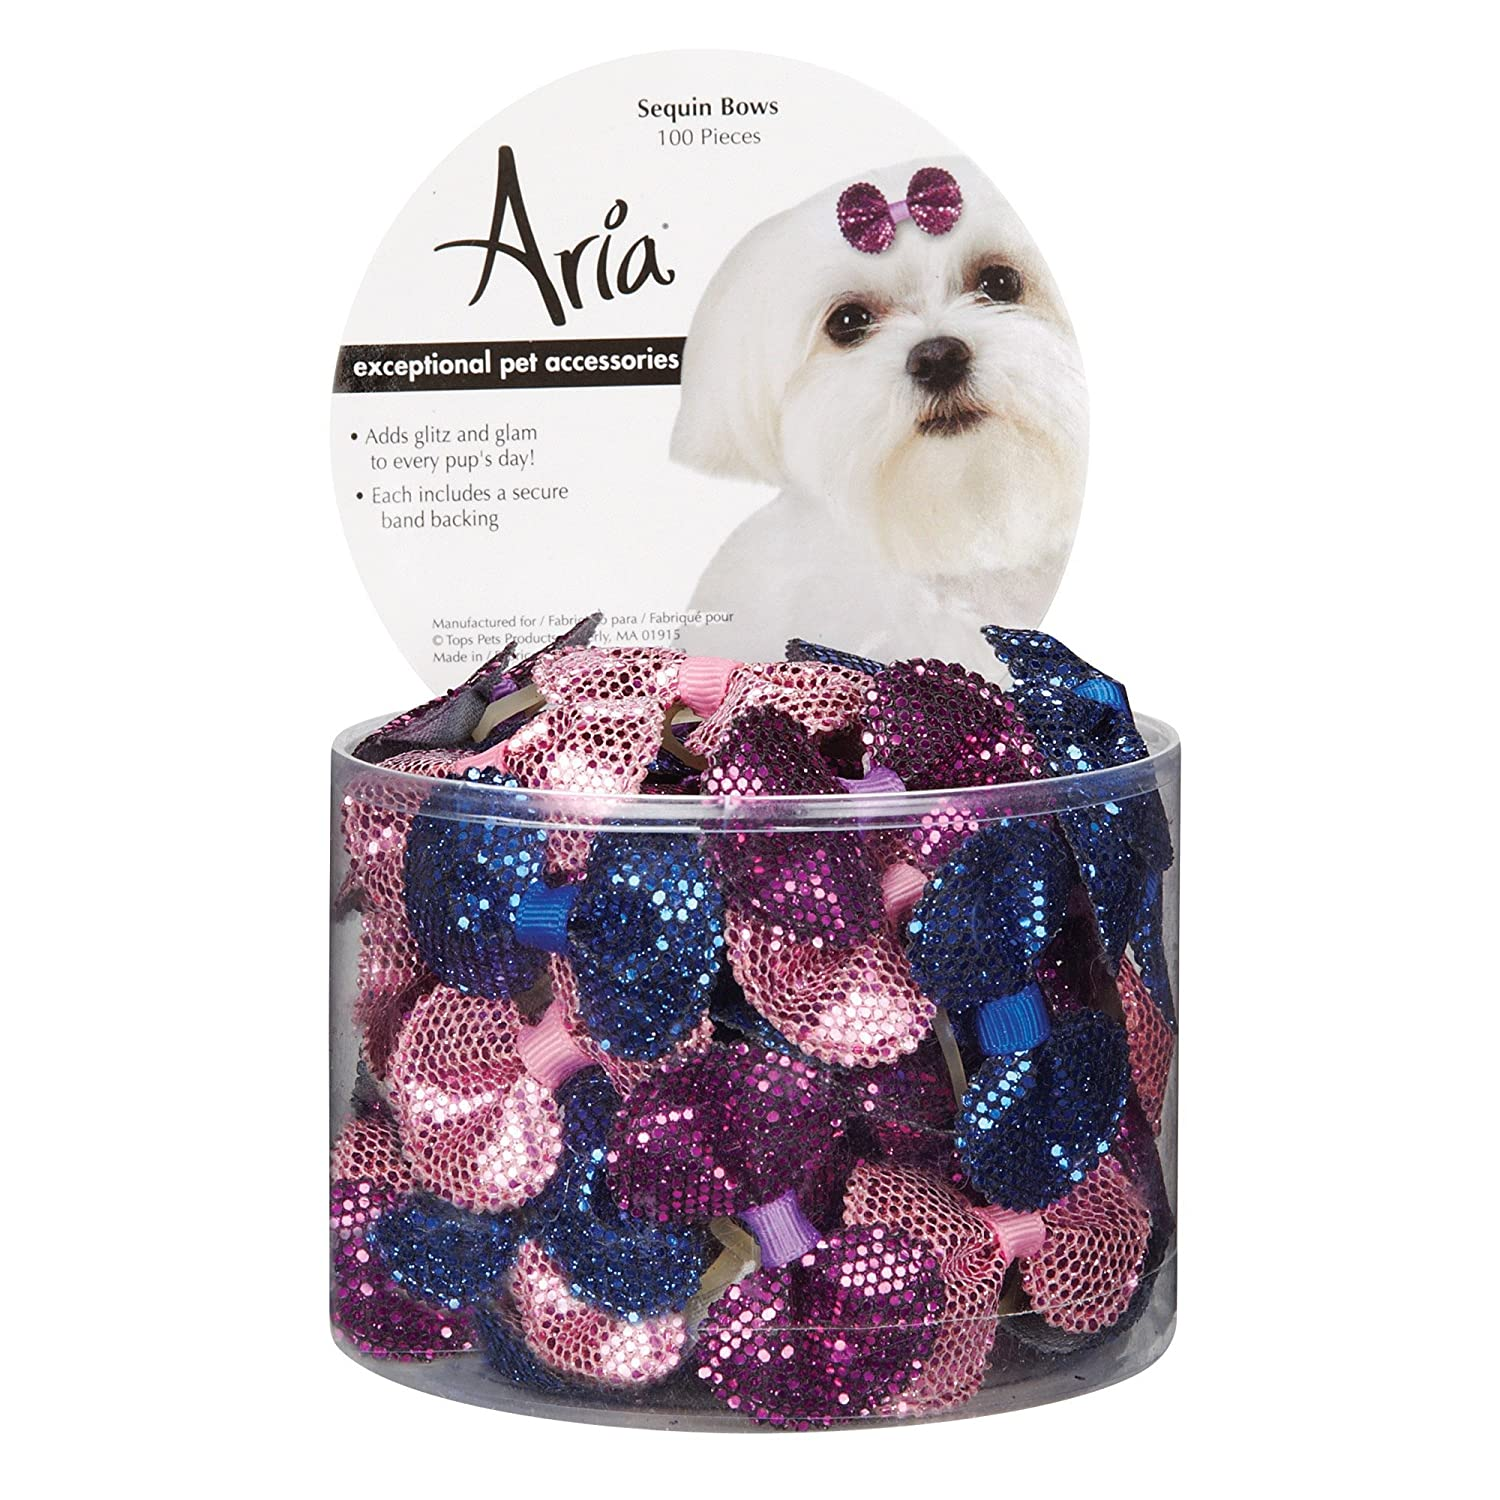 DT5638 99 Sequin Dog Hair Bow Canister, 100 Pieces Aria